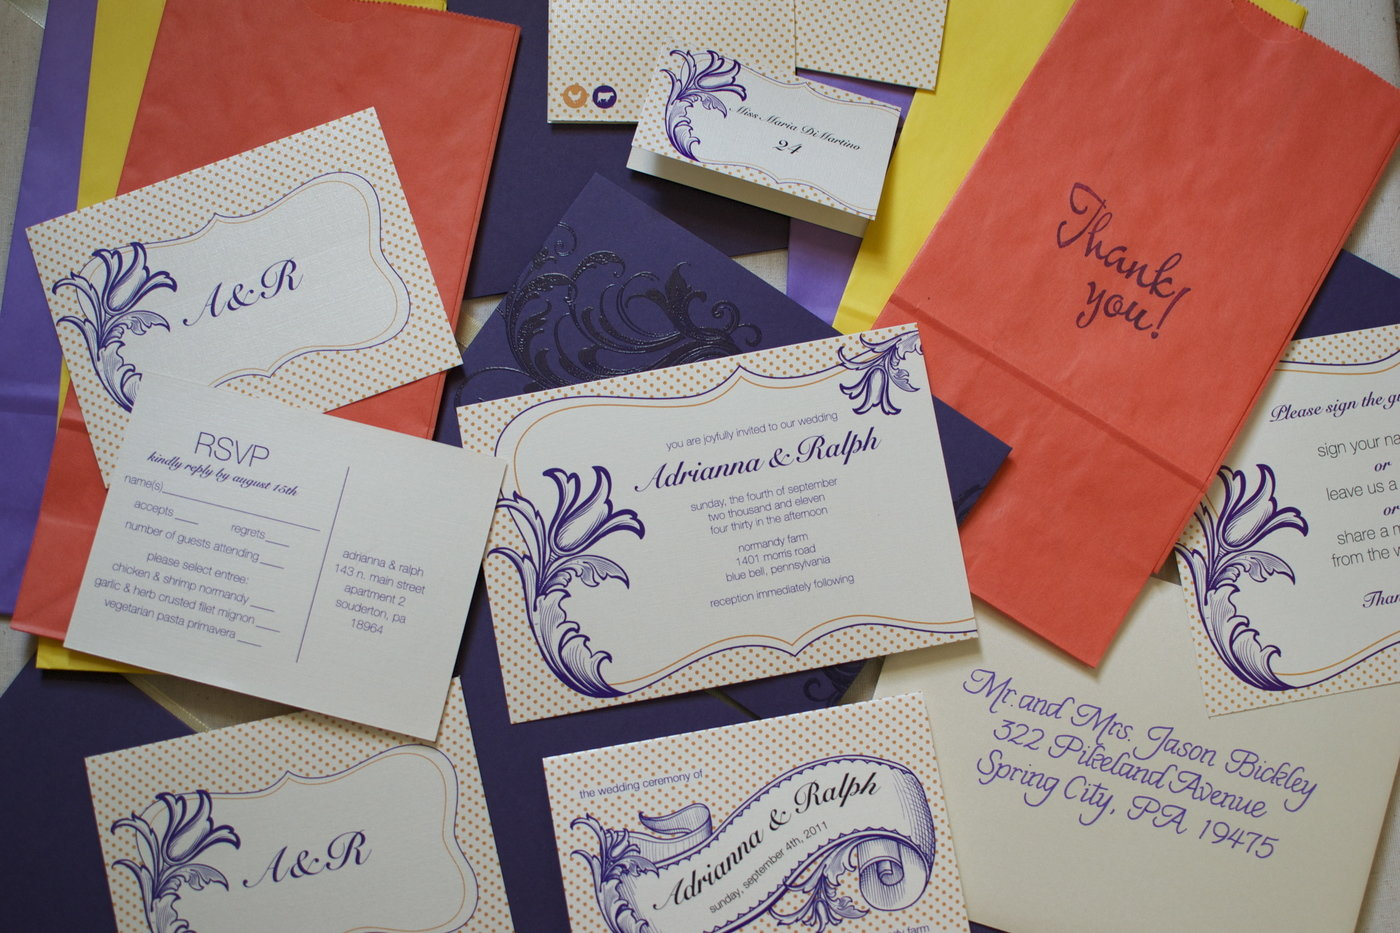 Wedding Invitations by Adrianna Hilborn at Coroflot.com